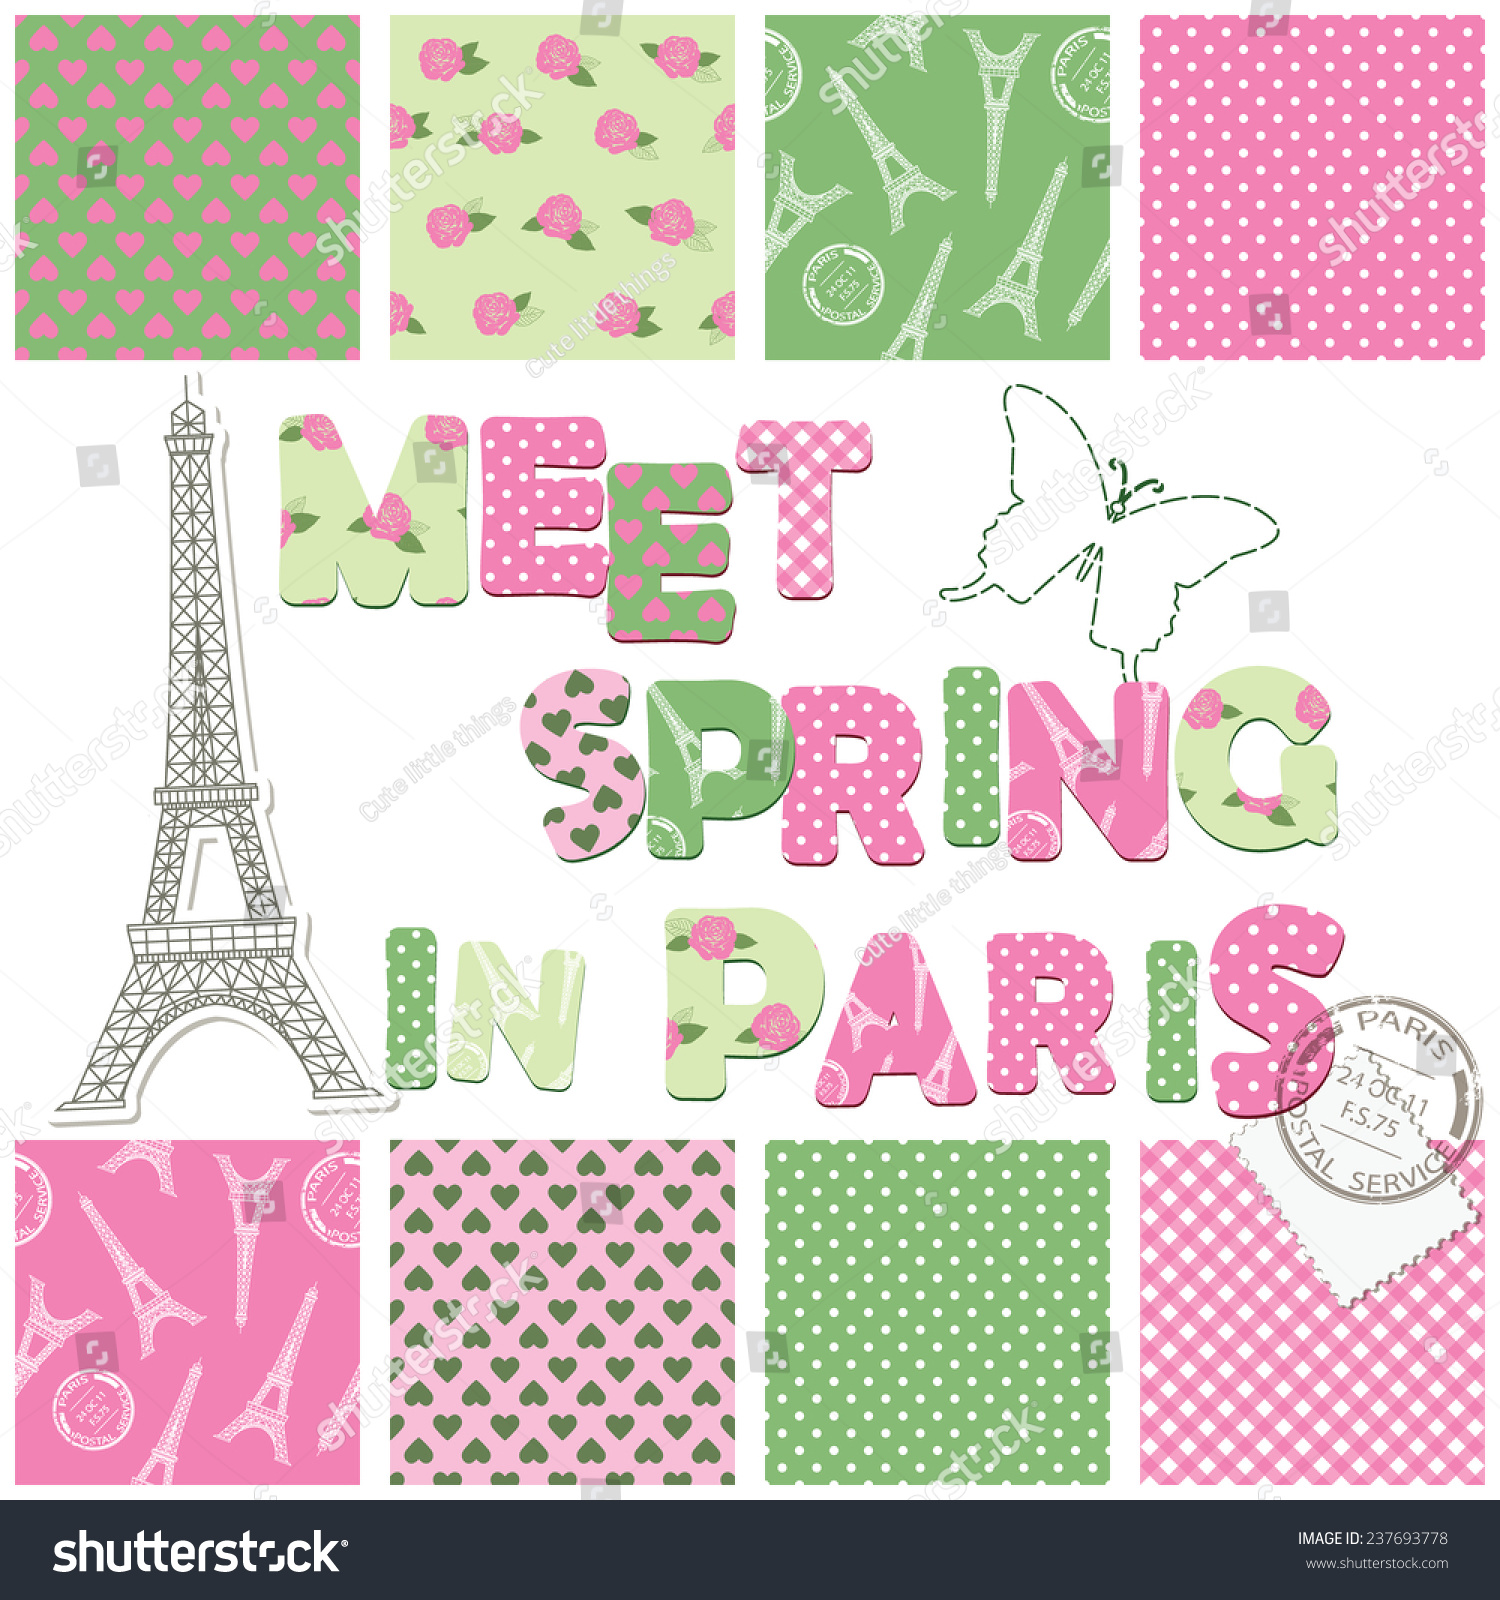 How to scrapbook letters - Scrapbook Design Elements Seamless Textile Patterns Letters Eiffel Tower Stamp Stitching